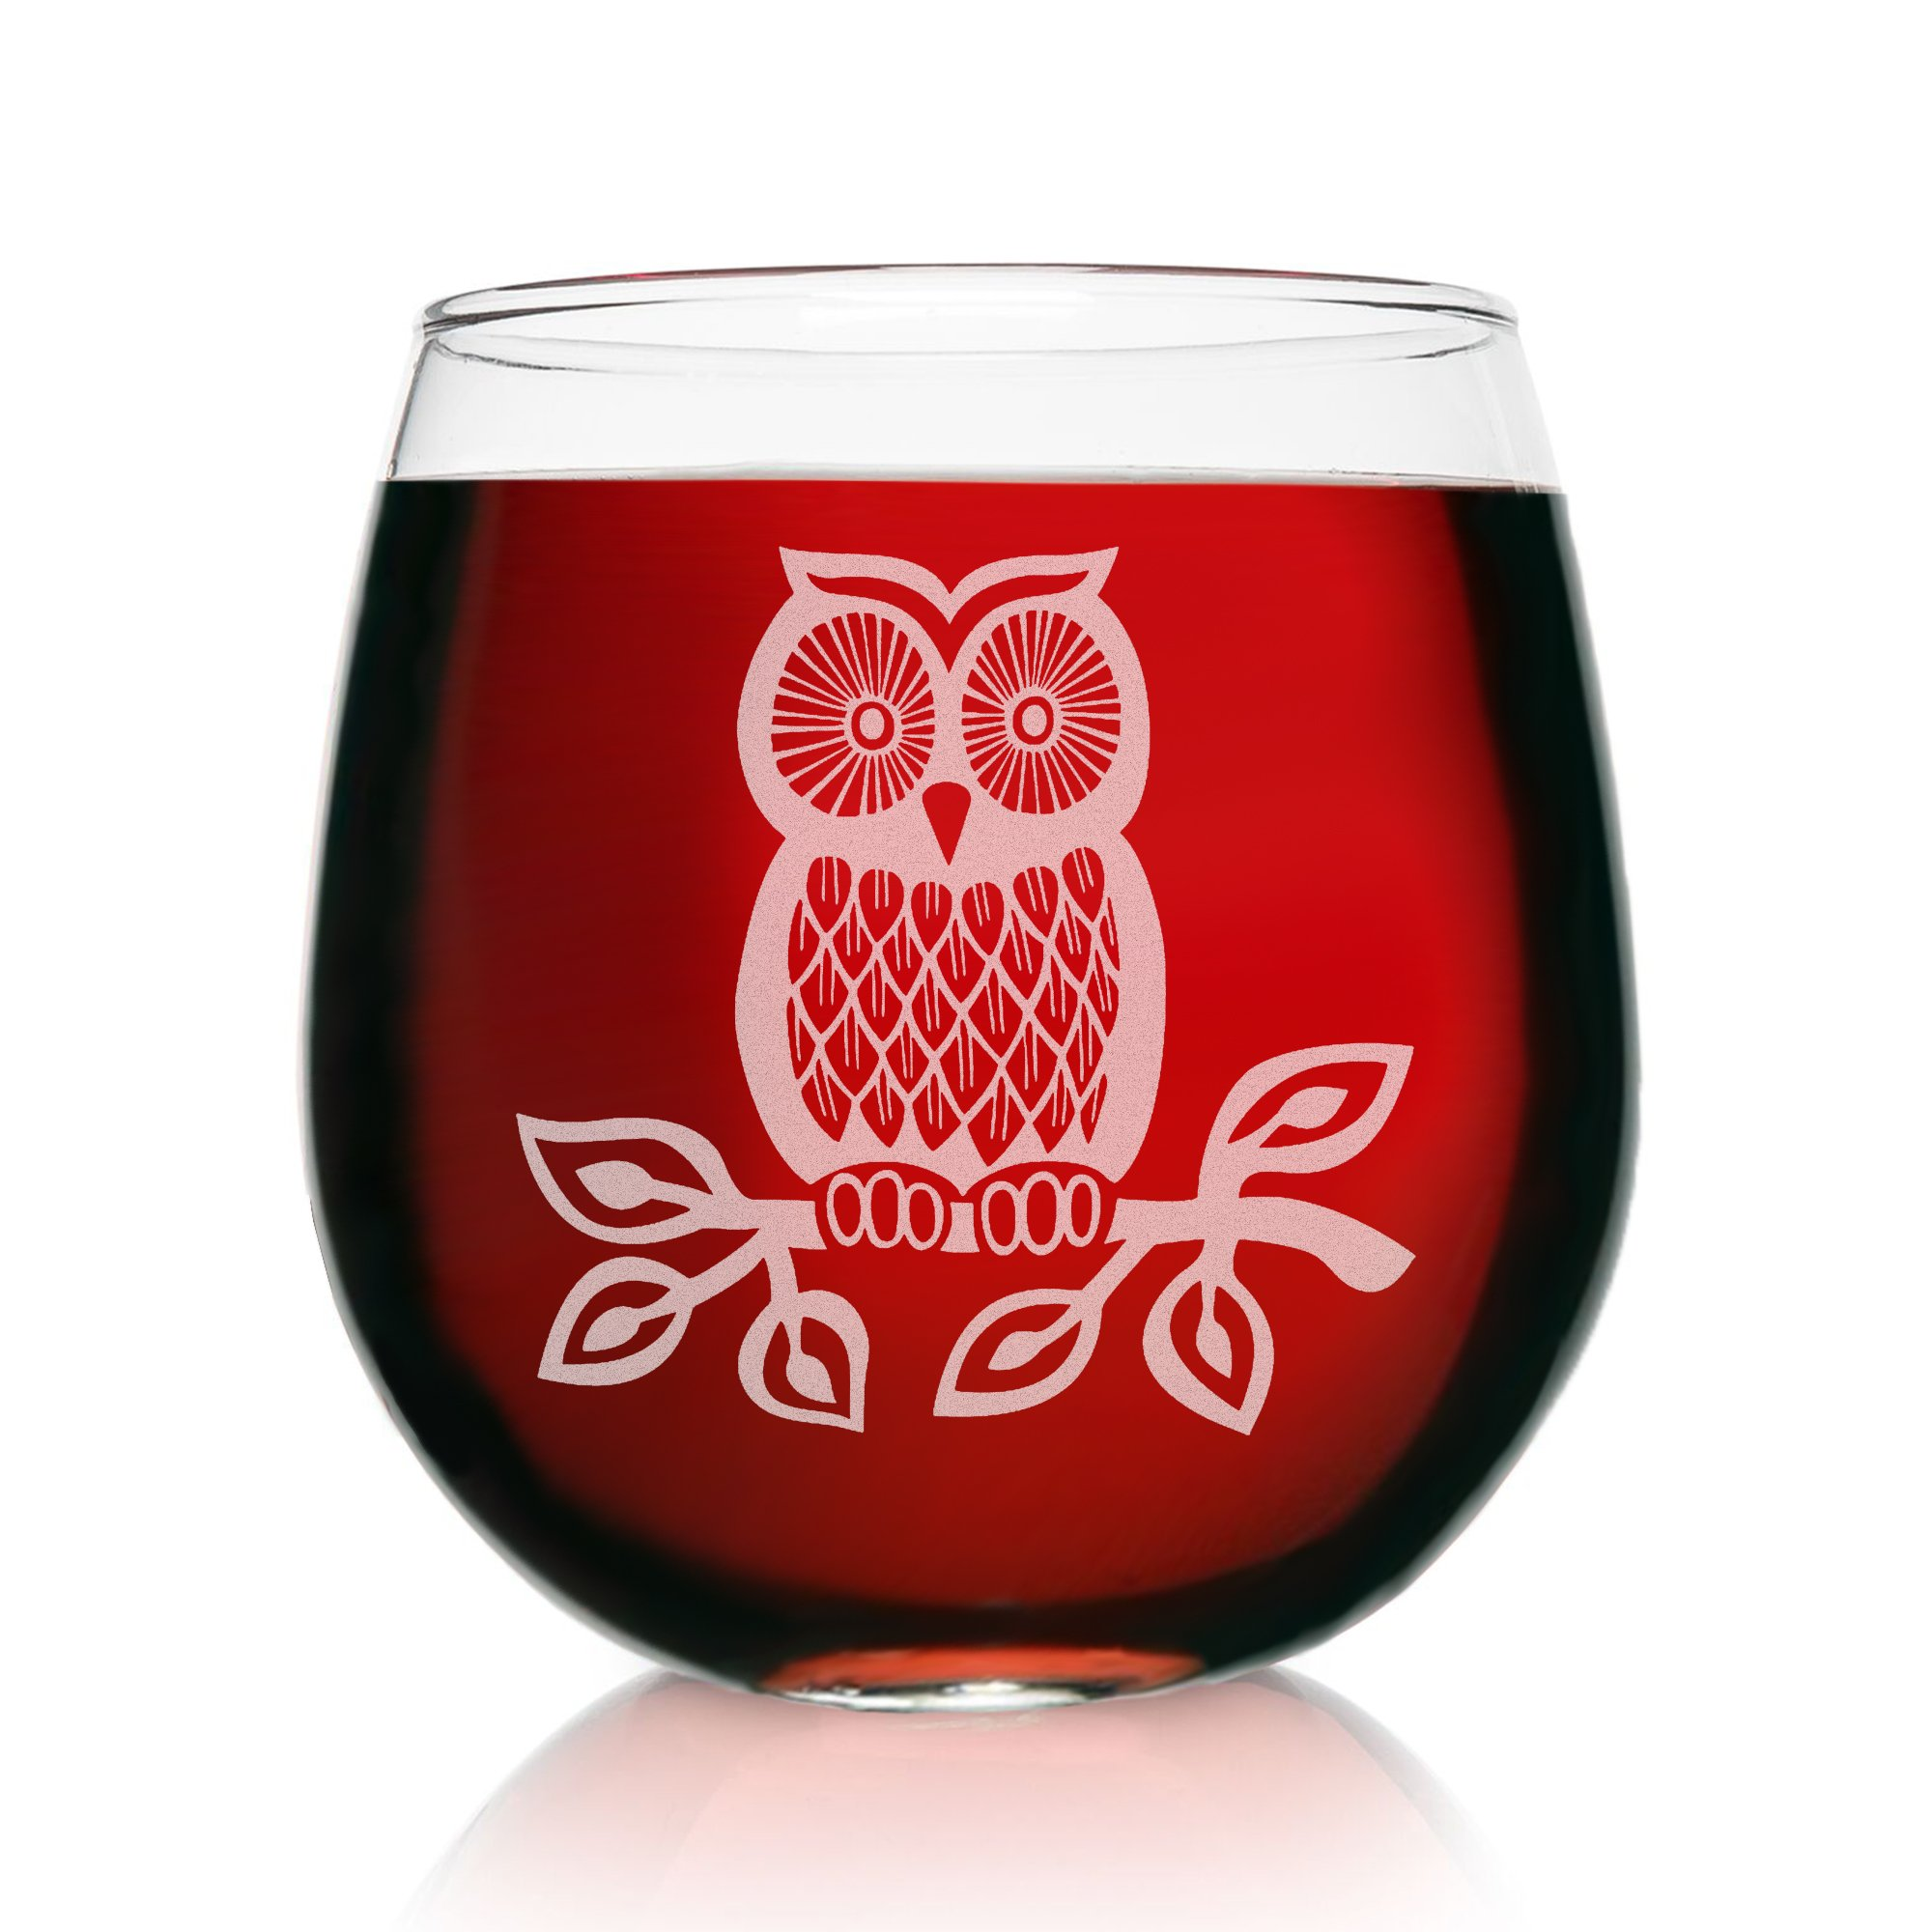 Engraved Stemless Wine Glasses-16.75 Ounce Capacity-Owl Design- 2 Piece Set- 16.75 Ounce Capacity- Elegant Glass-Multi-Perfect Gift for any Occasion- USA Made By: On The Rox (Owl-Engraved)